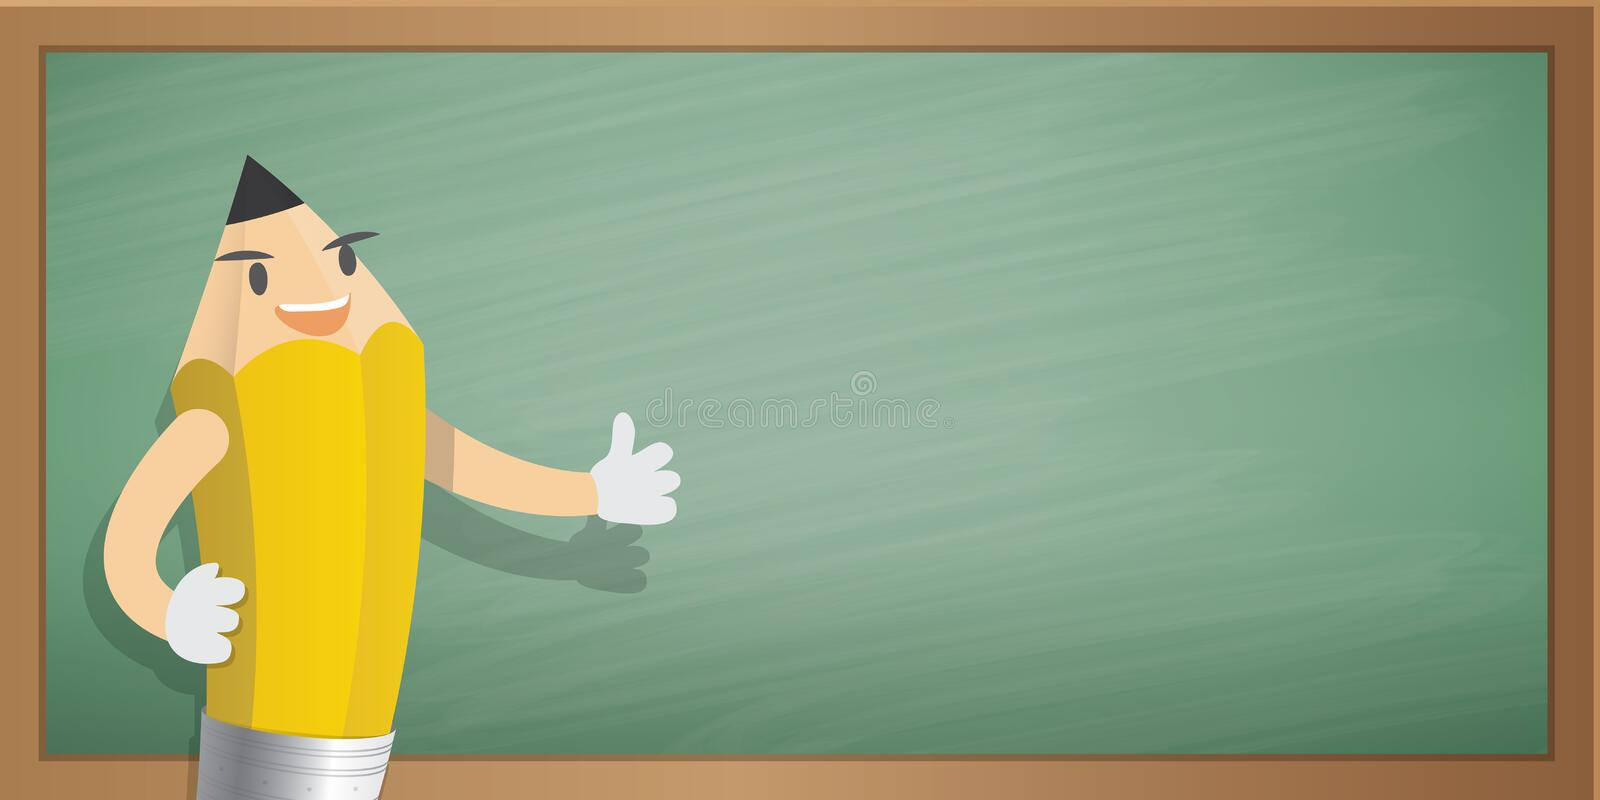 Pencil Character Cartoon Design And Green Board Frame Background ...